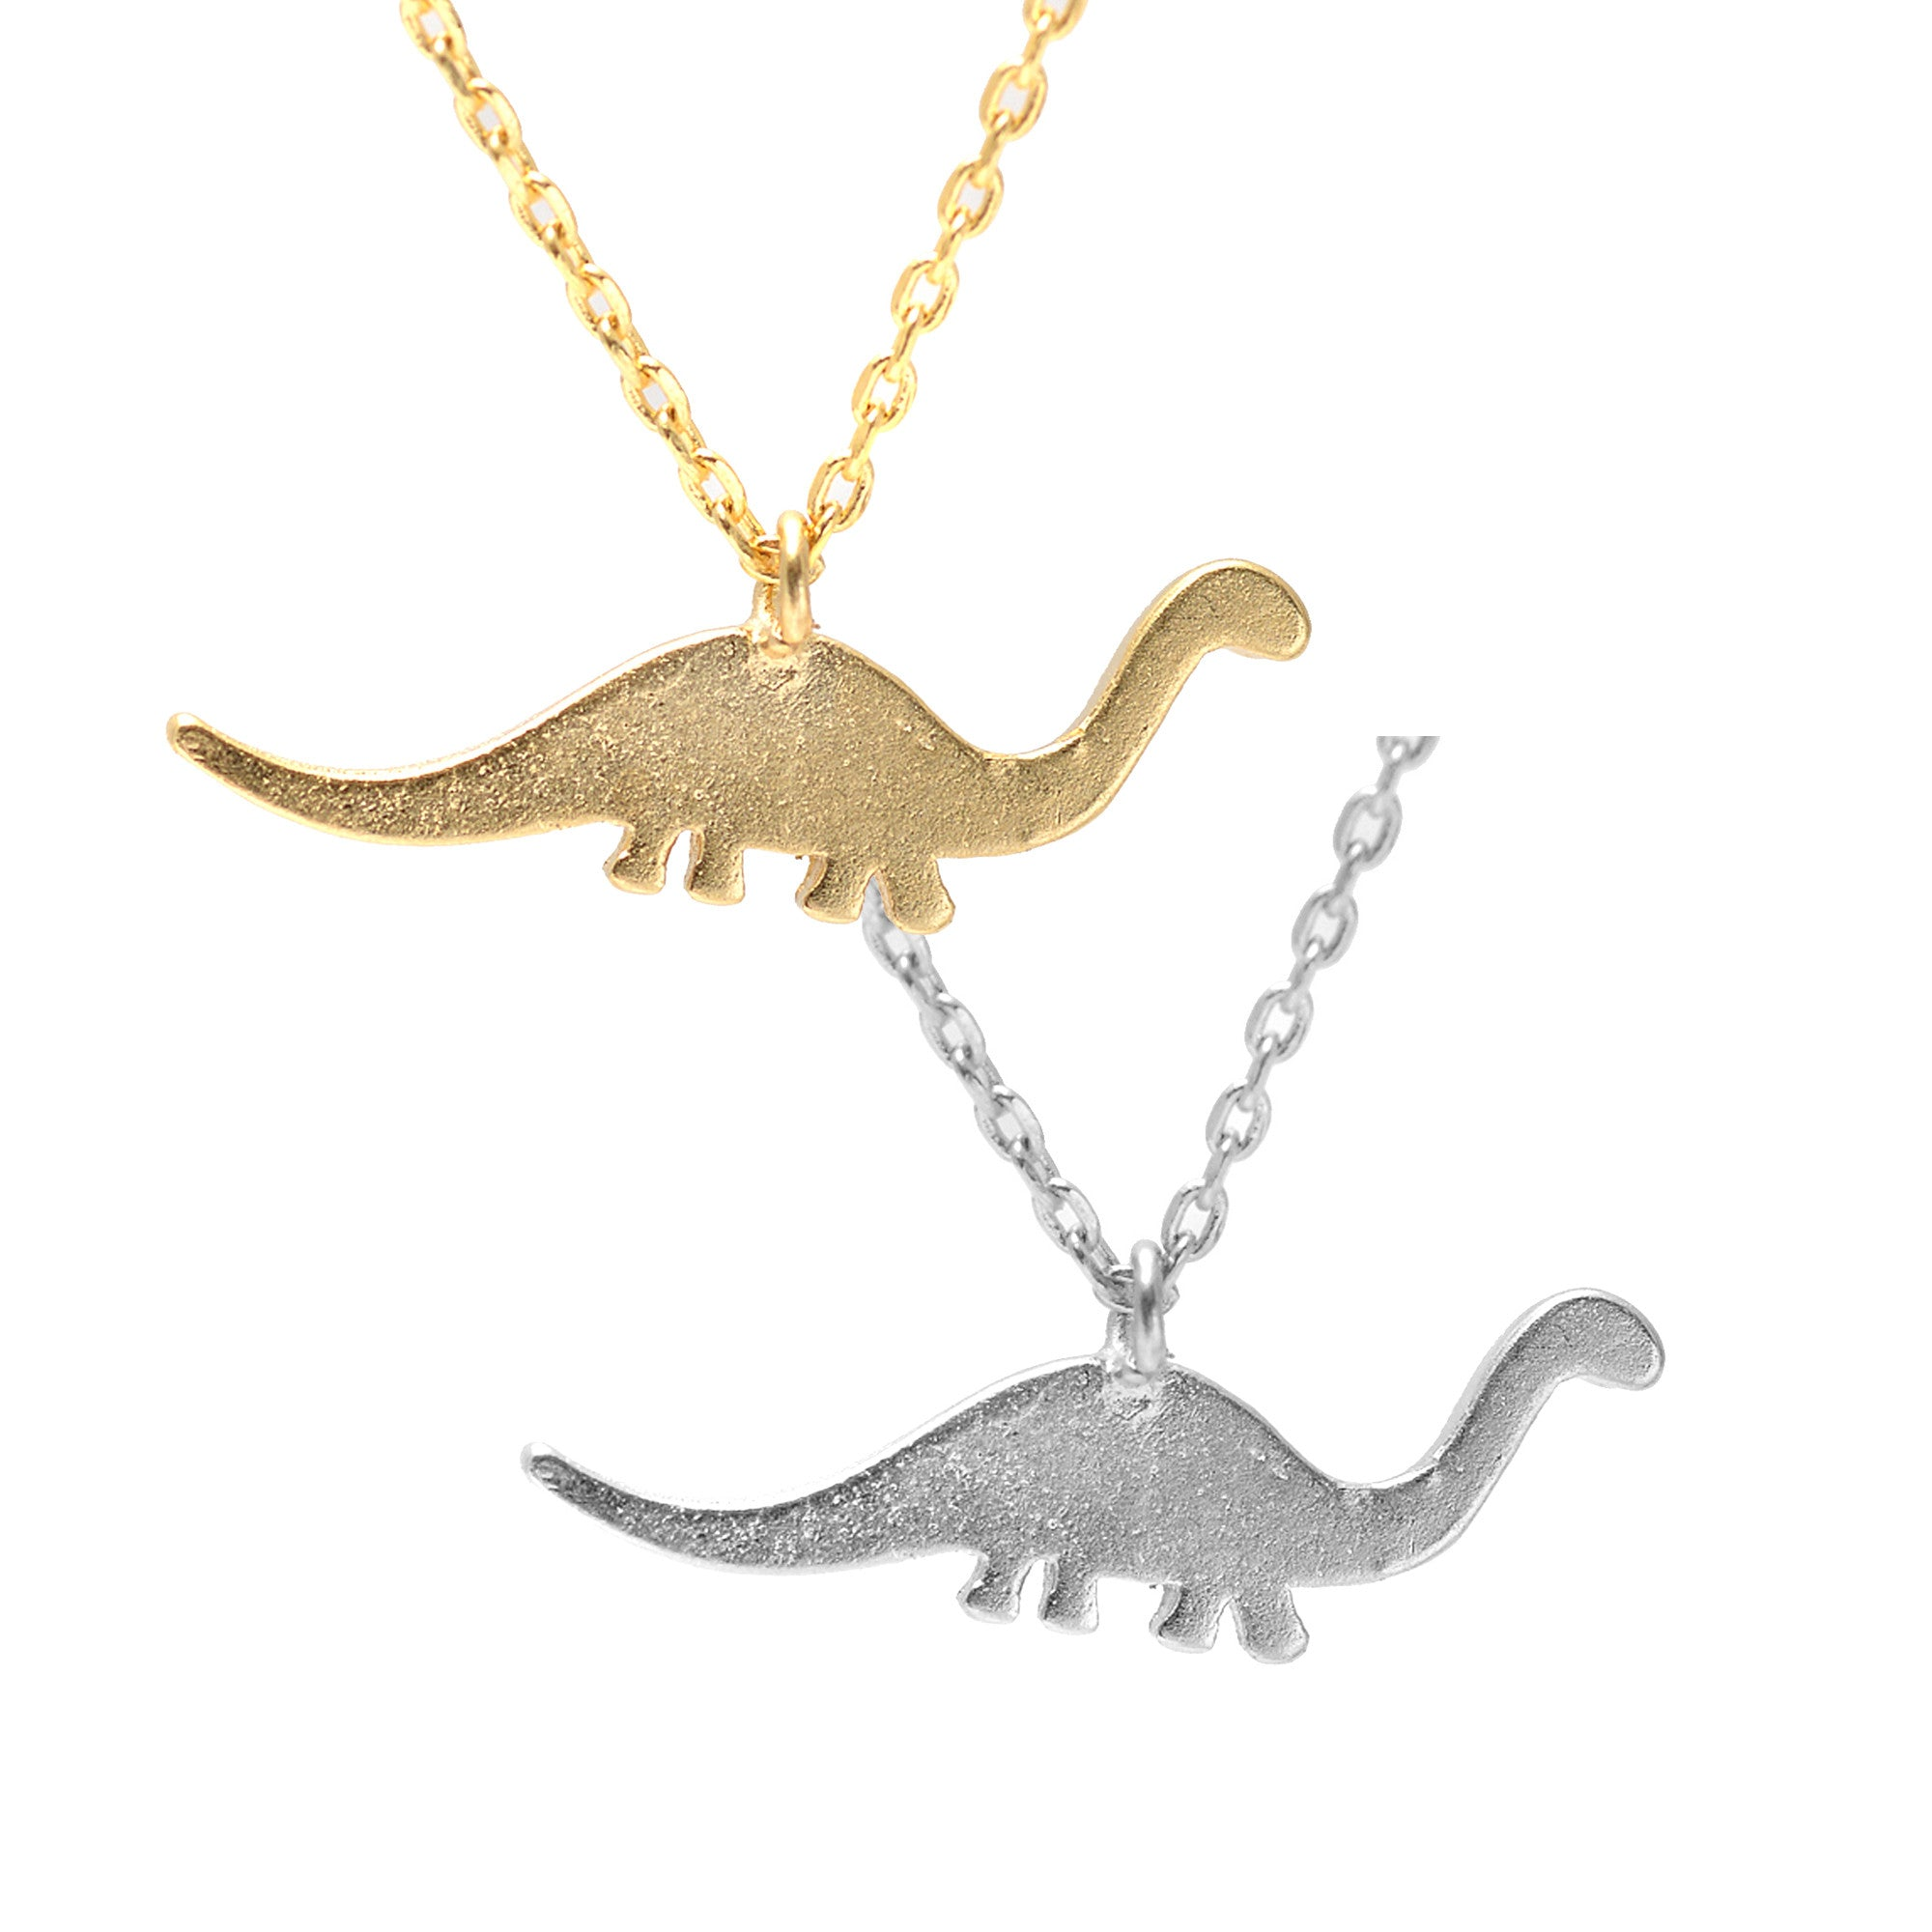 origami safari silver rhodium plated pendant women zoom john greed dinosaur necklace